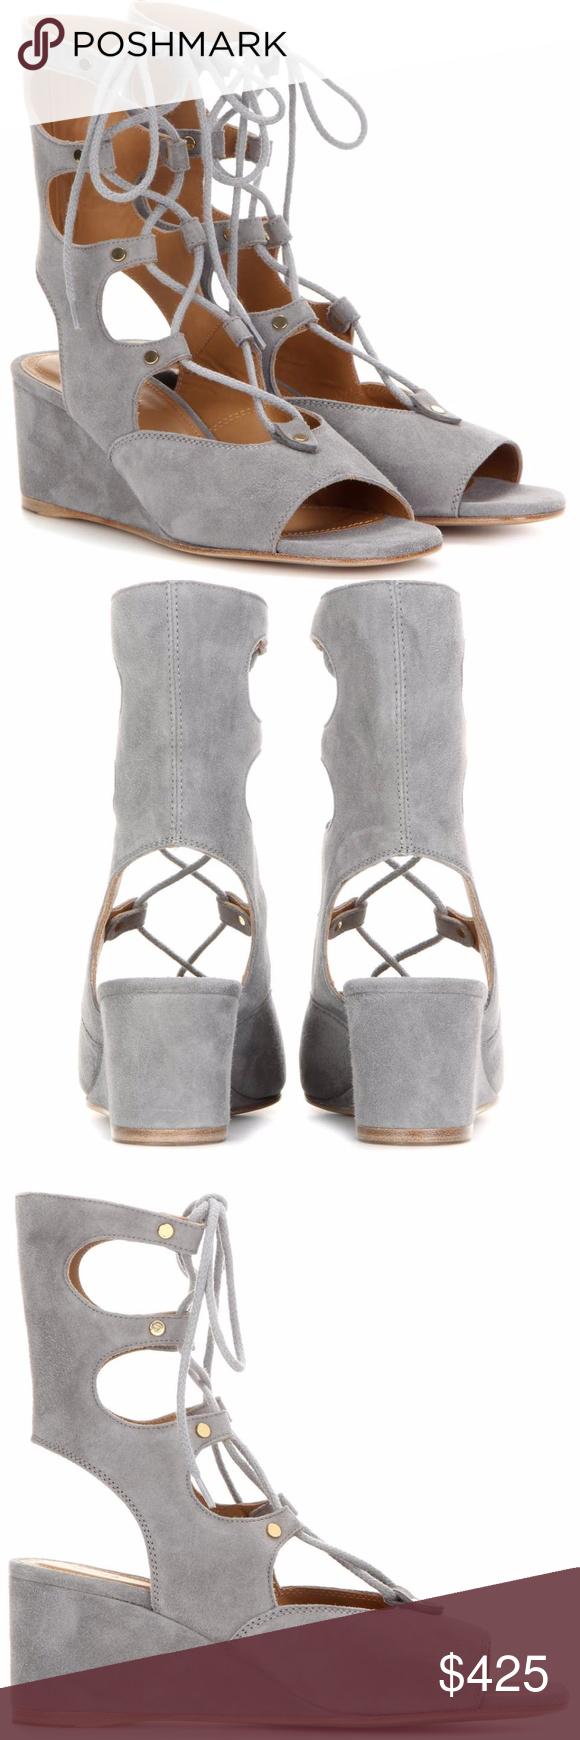 7f99dfedc19 Chloe Foster suede gladiator wedge sandals Hailed as the shoes of the  season by top fashion